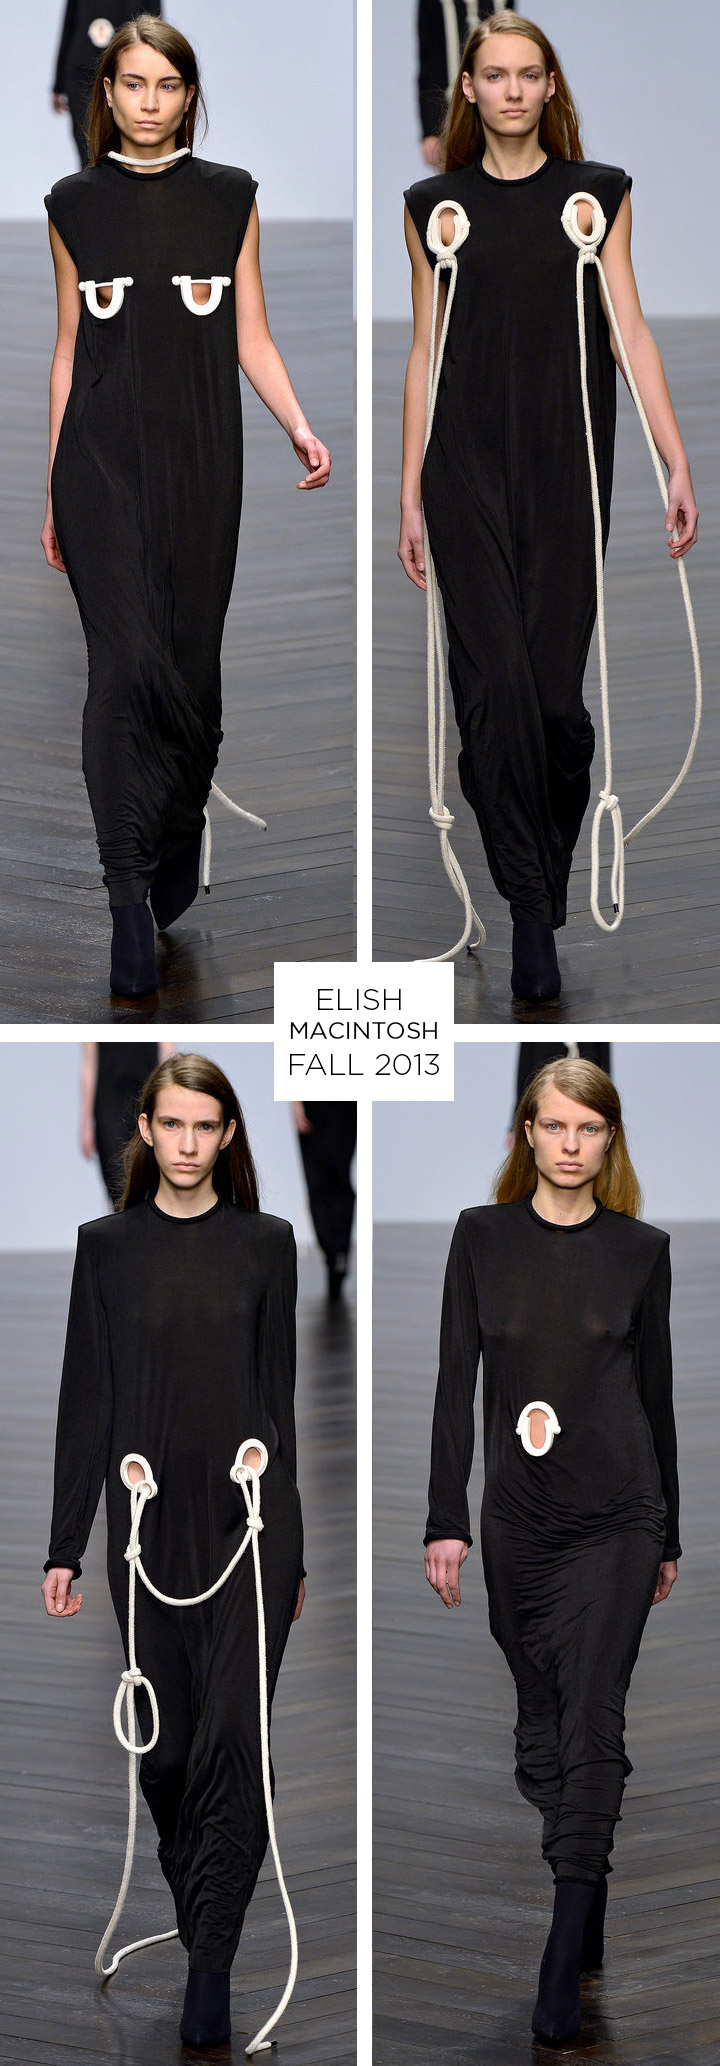 One to Watch: ELISH MACINTOSH FALL 2013 | DeSmitten